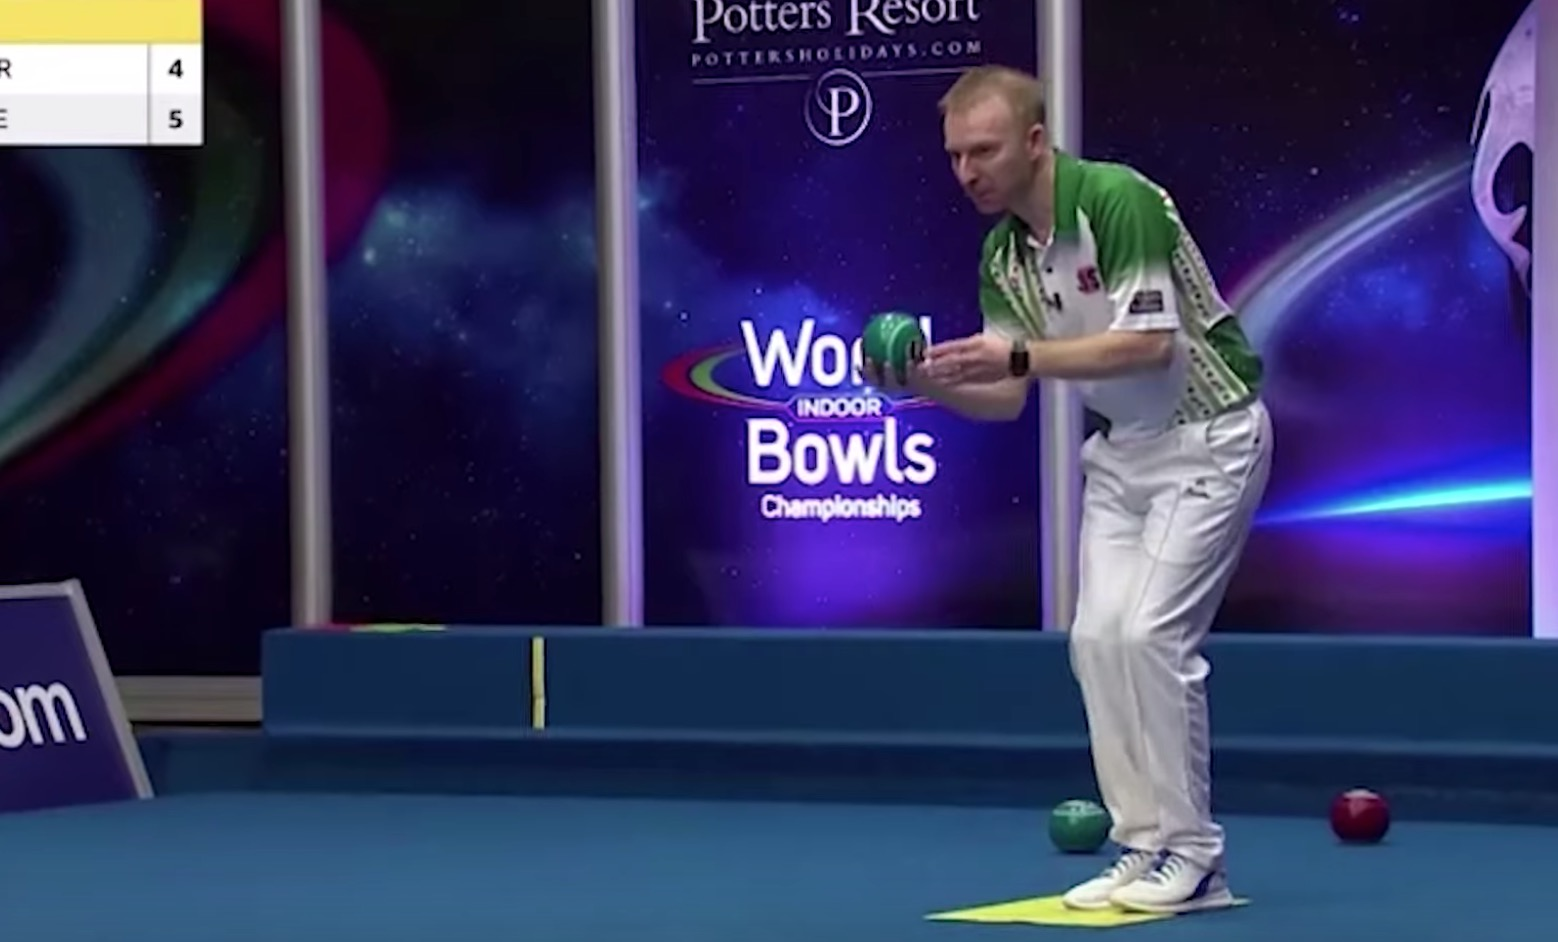 'That Is Ridiculous': This Bowls Shot Is Absolutely Unbelievable